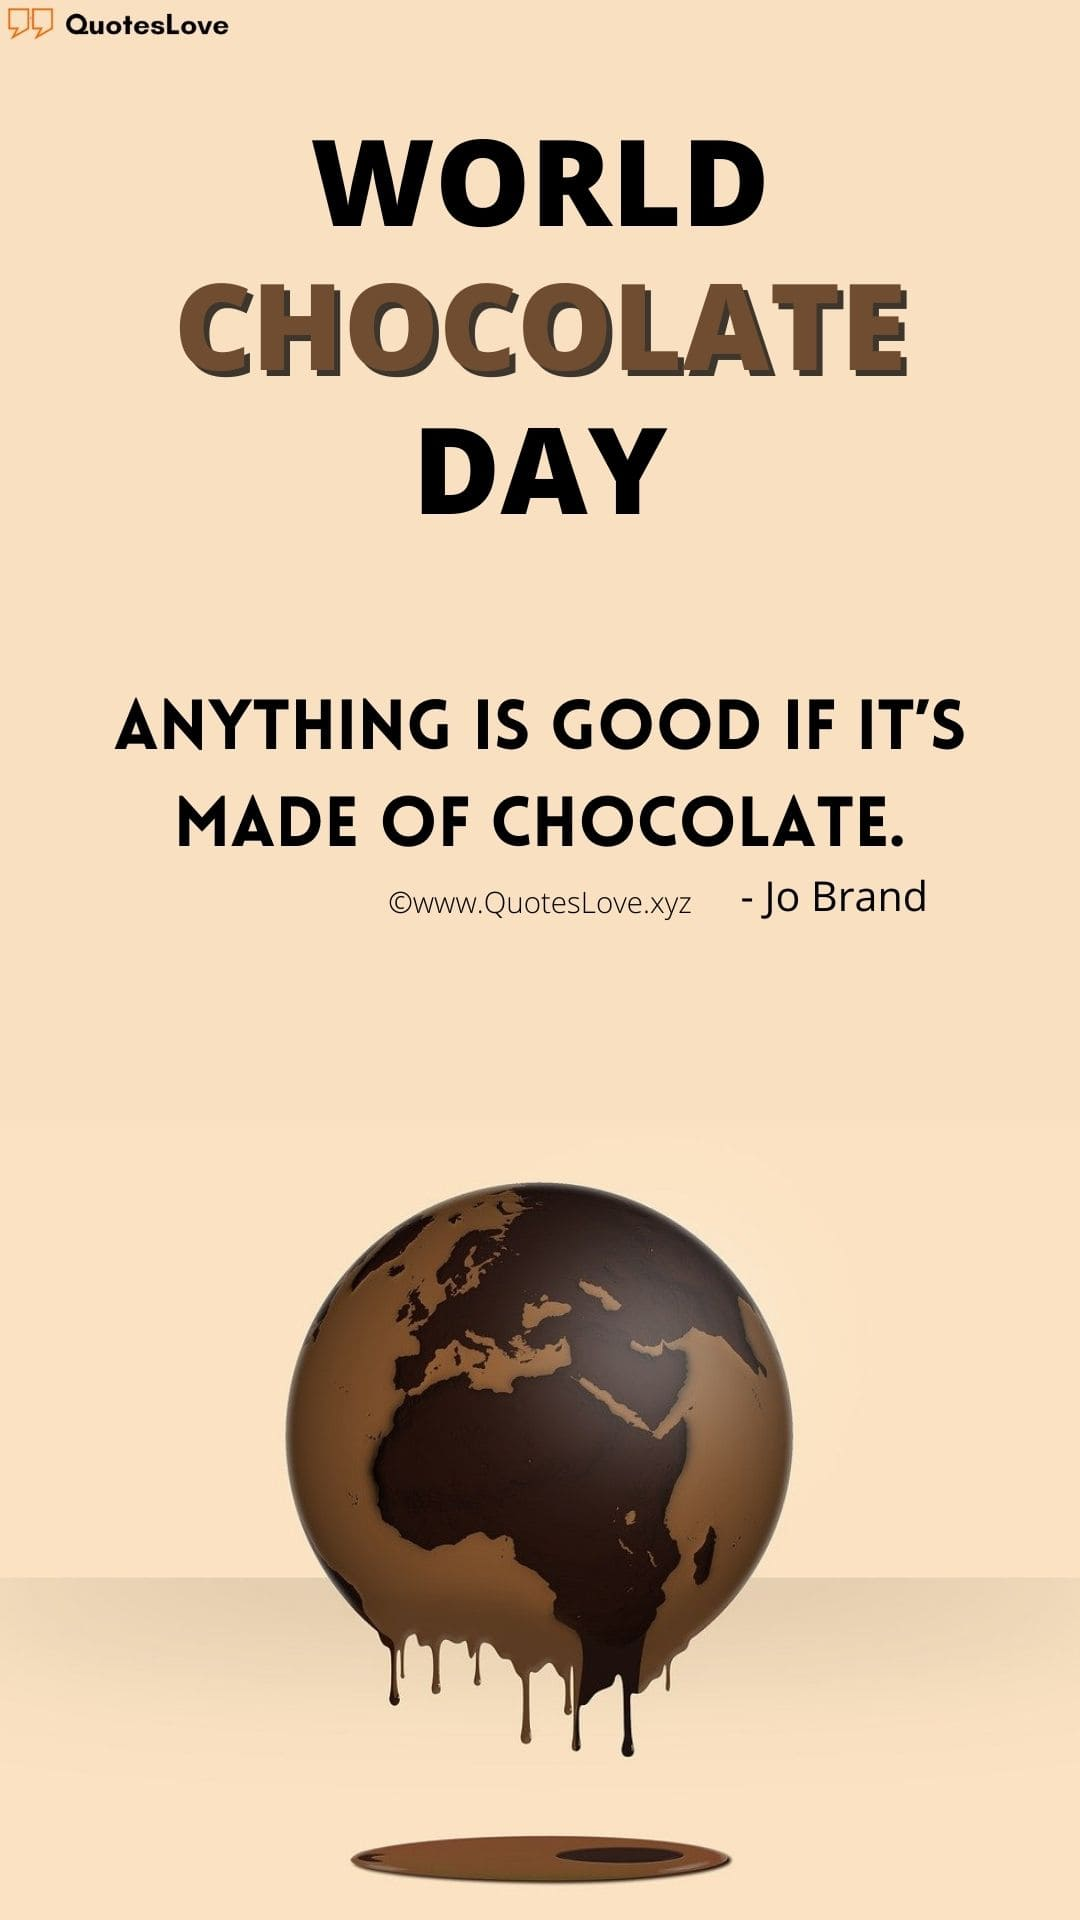 World Chocolate Day Quotes, Wishes, Greetings, Messages, Theme, Images, Poster, Pictures, Photos, Wallpaper